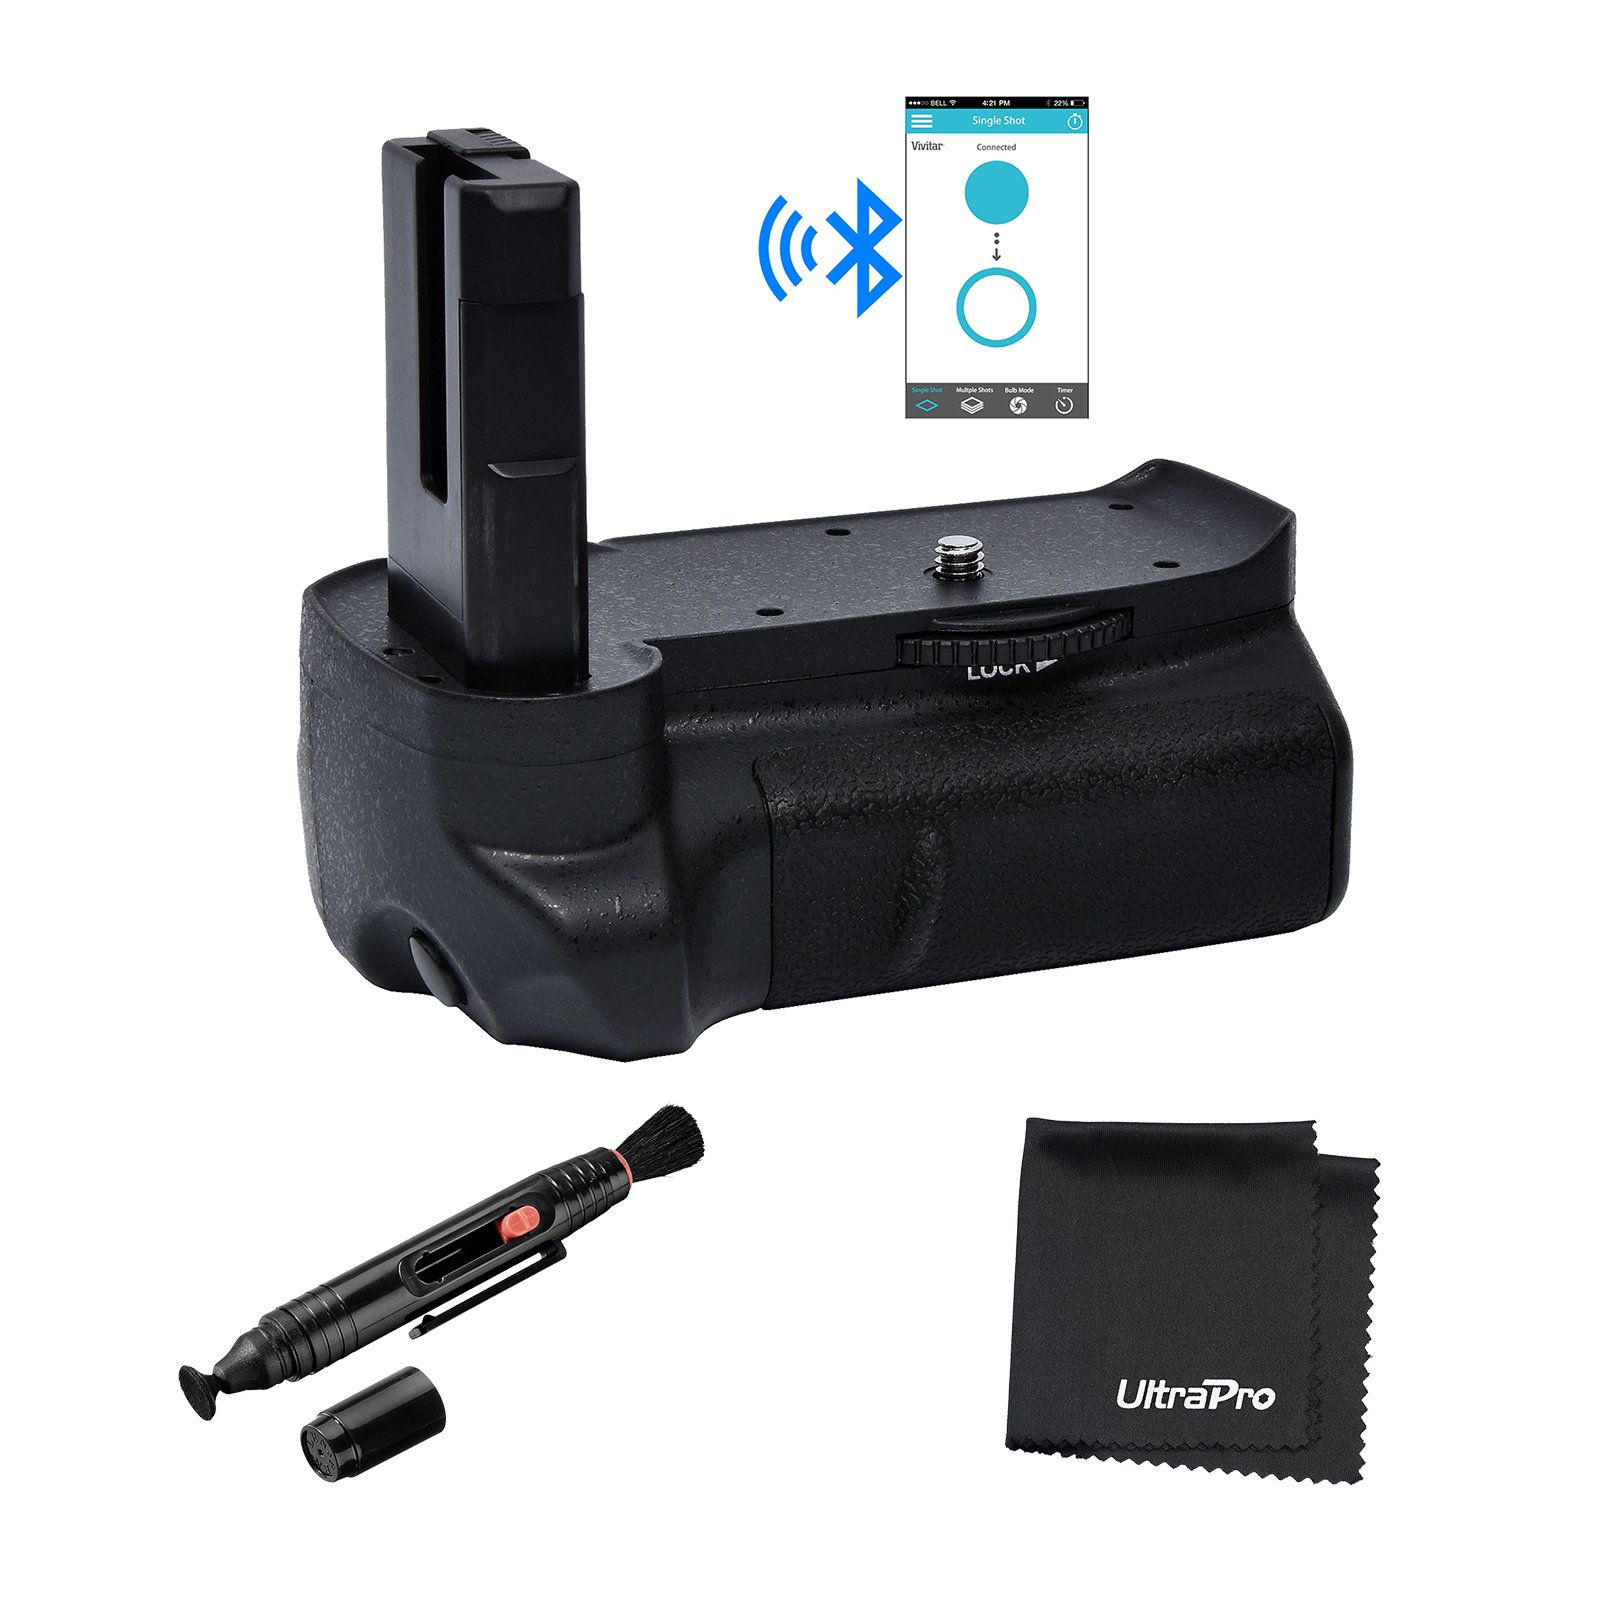 Bluetooth Battery Grip Bundle F/Nikon D3100, D3200, D3300: Includes Vertical Battery Grip, MicroFiber Cloth, Lens Cleaning Pen by UltraPro